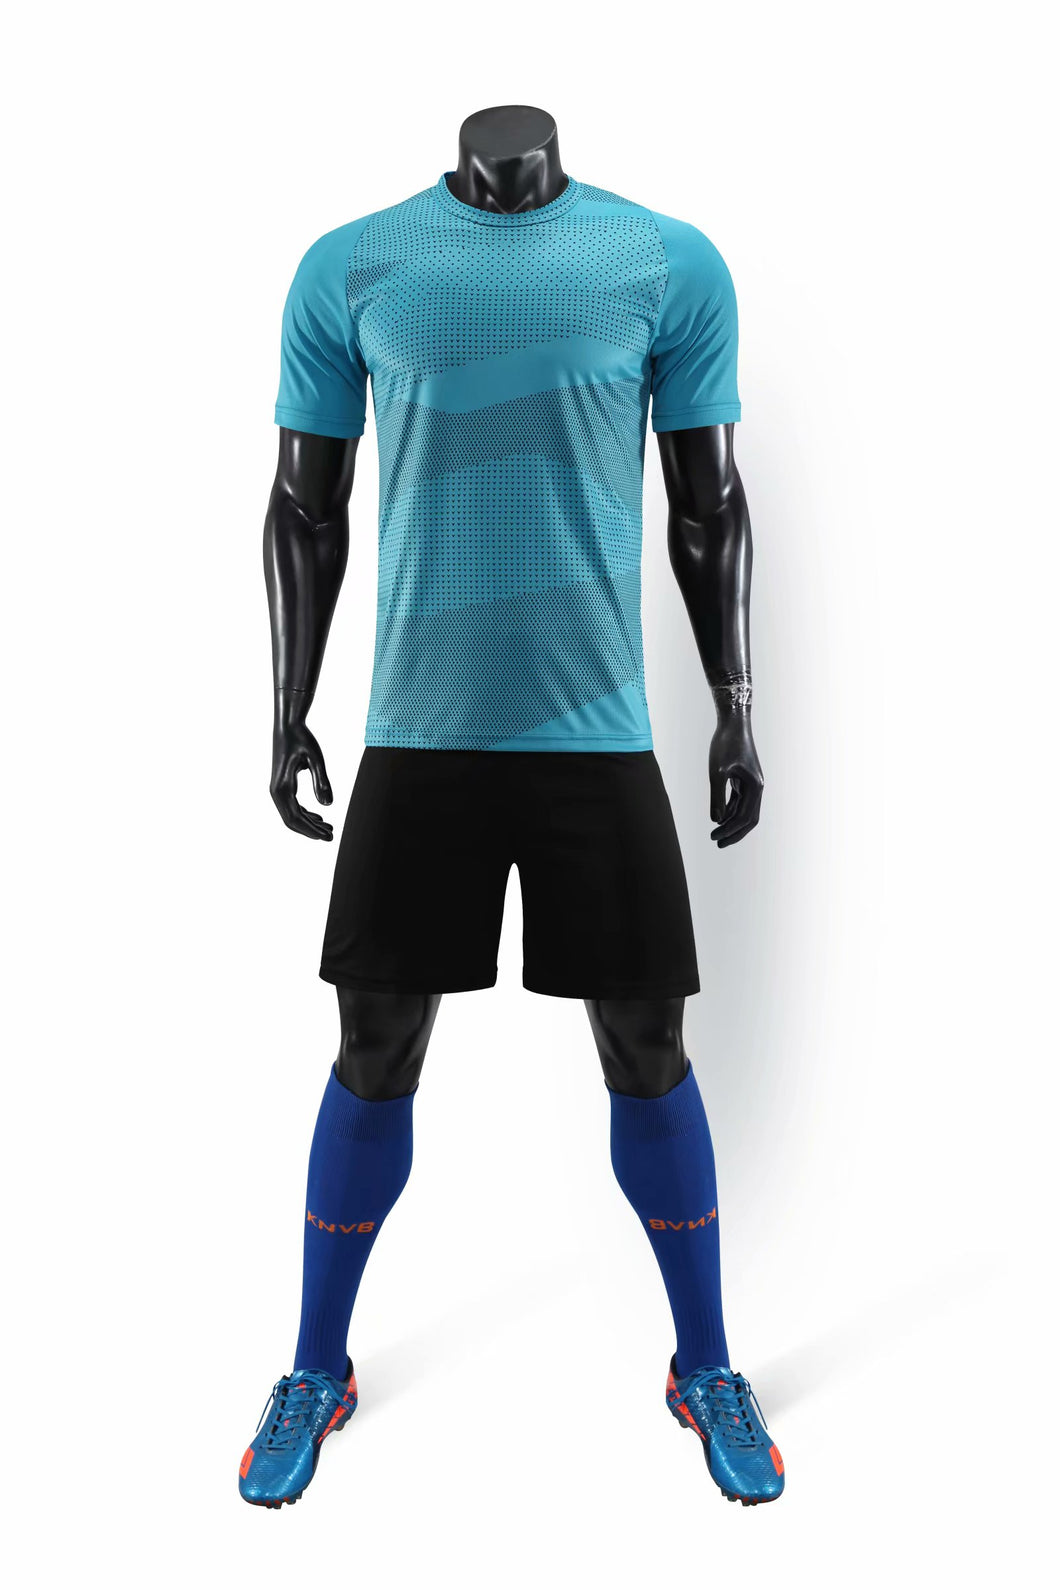 Full Football Kit - Sky Blue with Wave Design and Black Shorts.